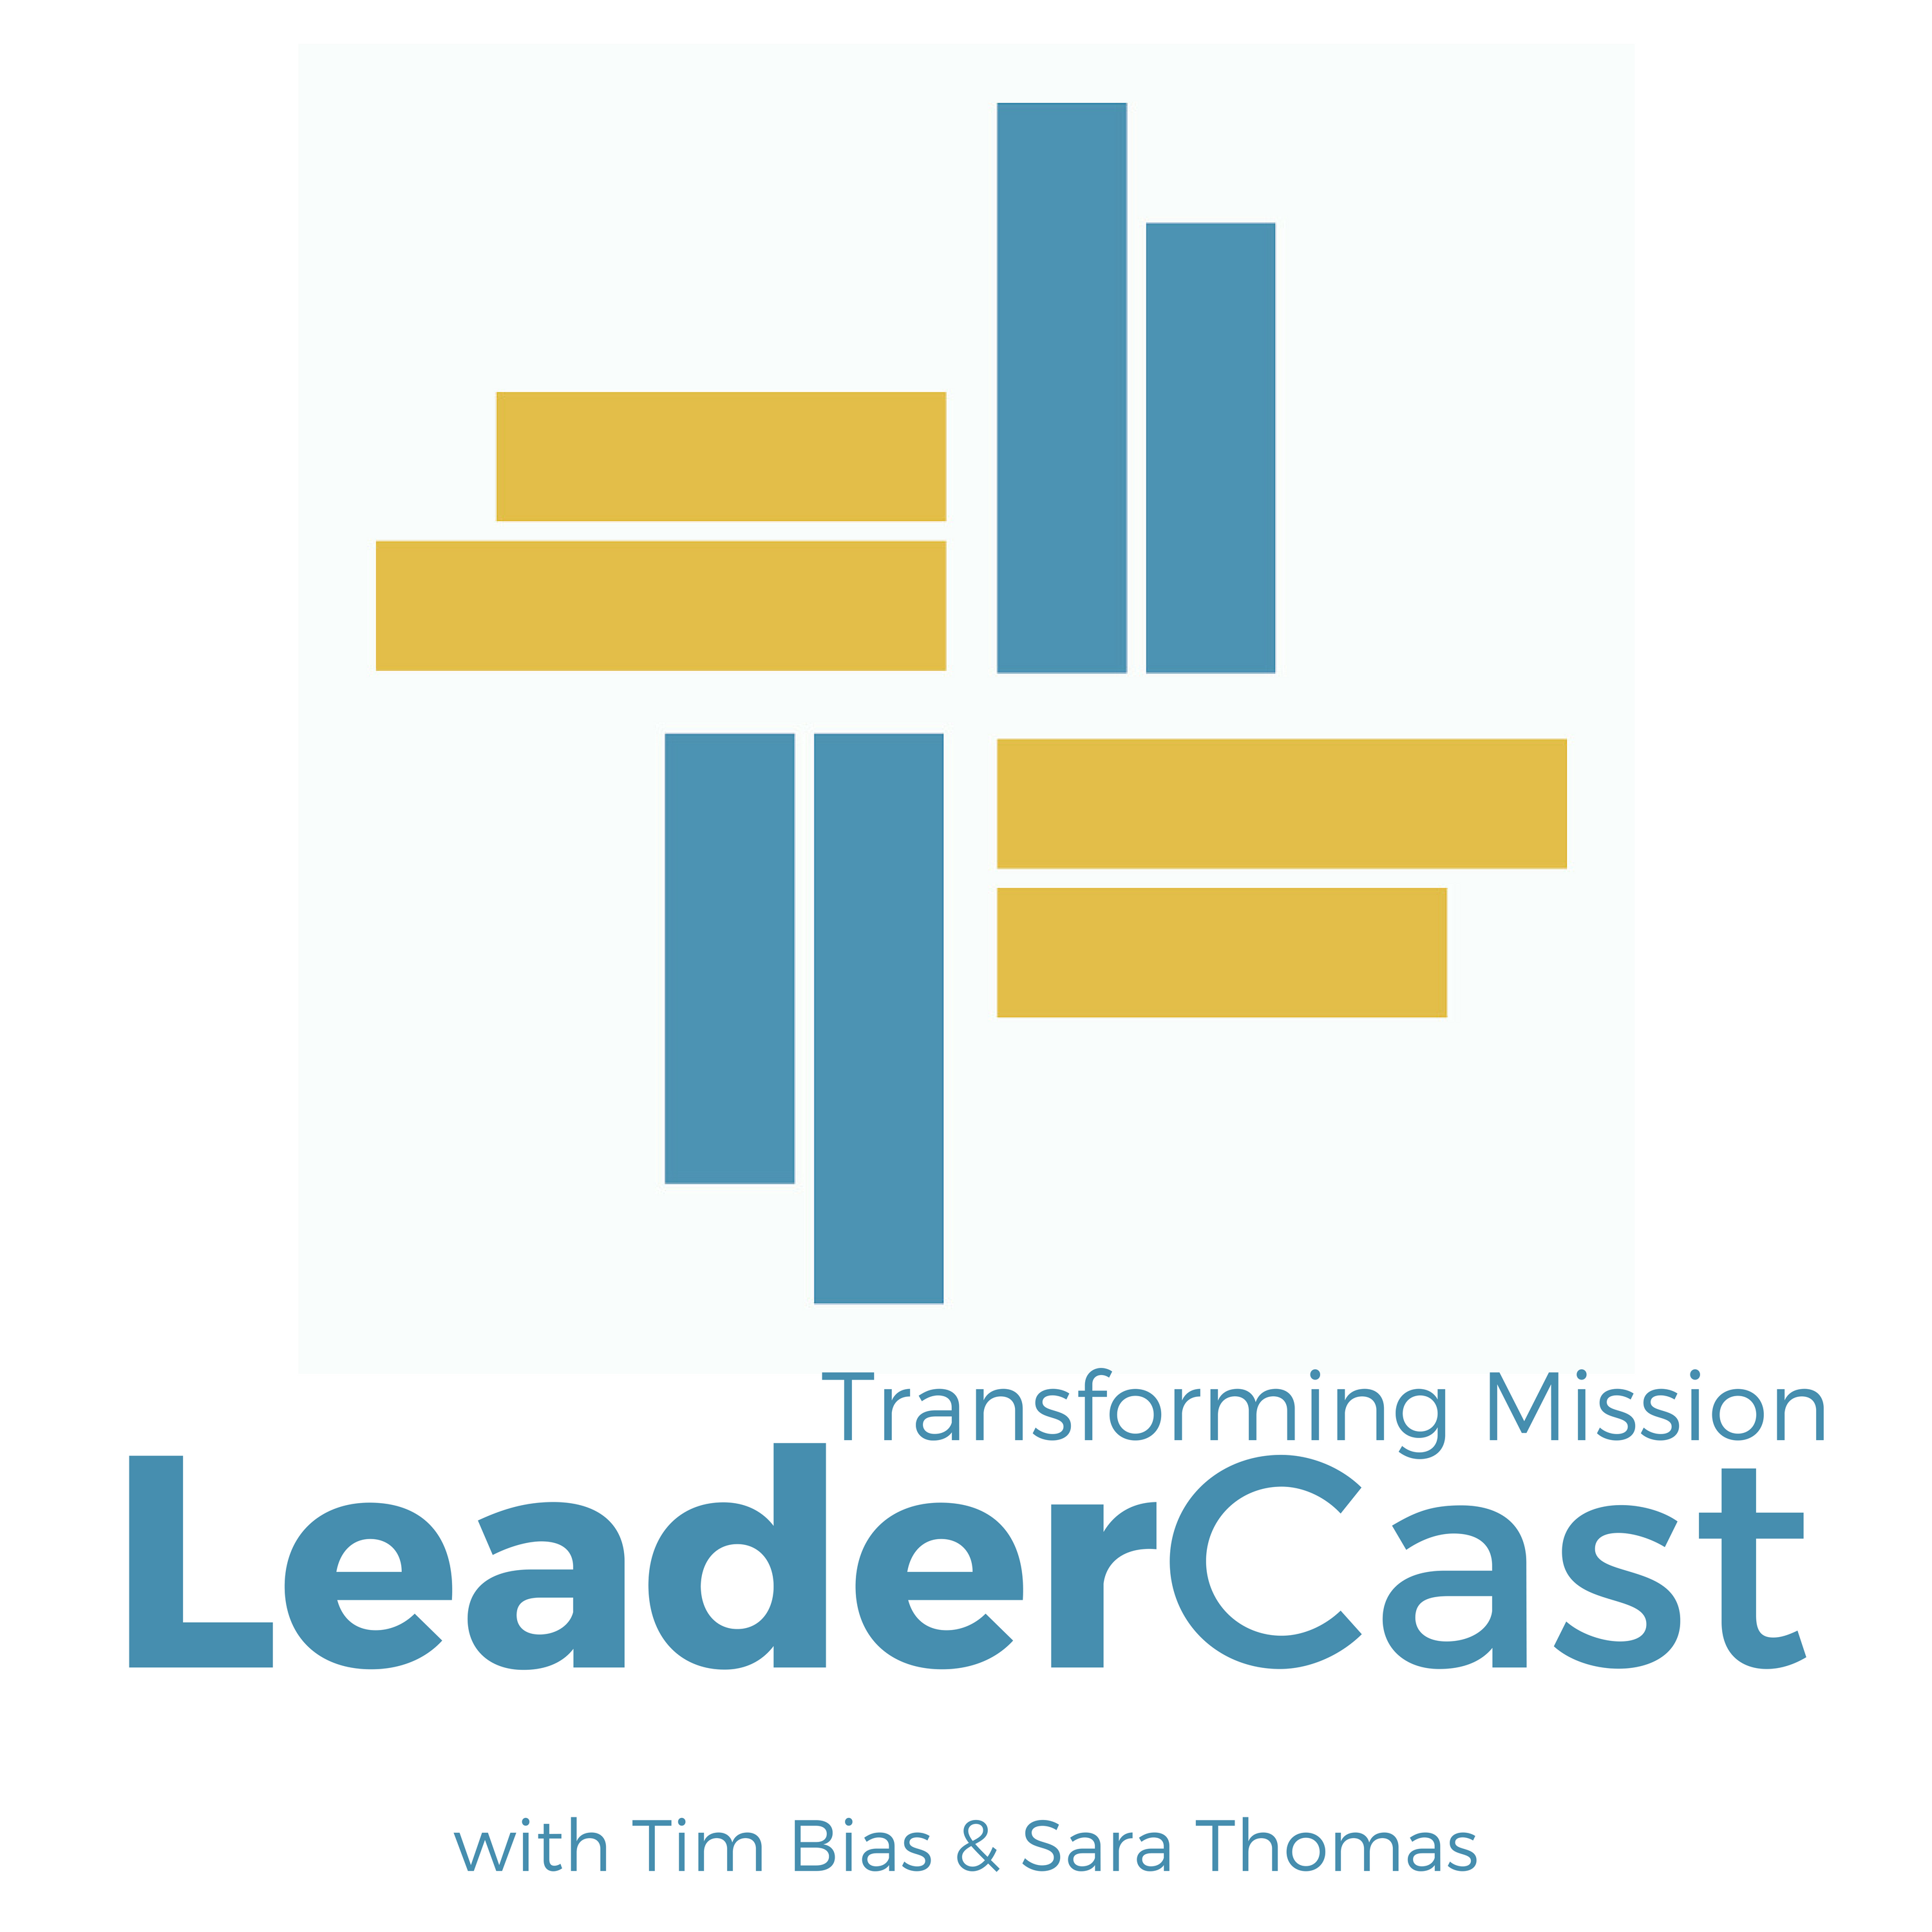 Transforming Mission LeaderCast with Tim Bias & Sara Thomas show art